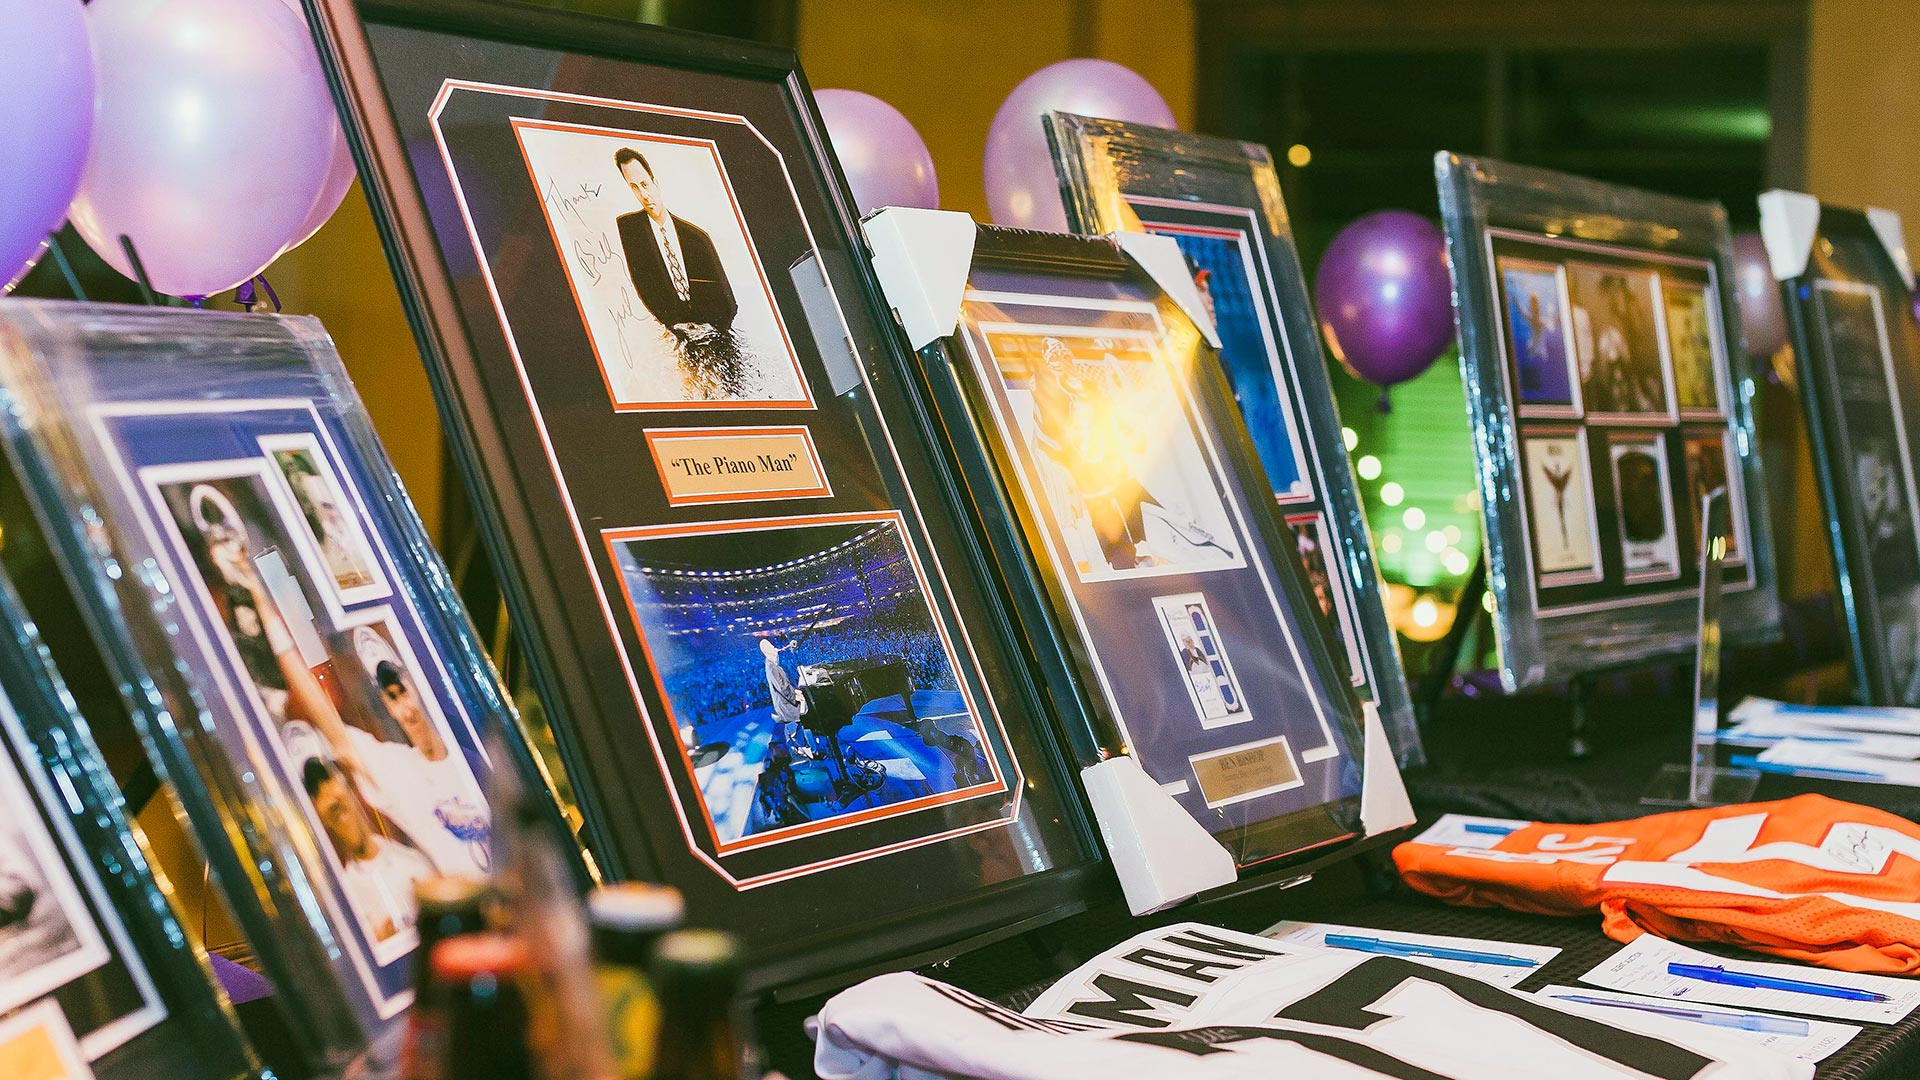 Auction items at an event run by SociallyFunded